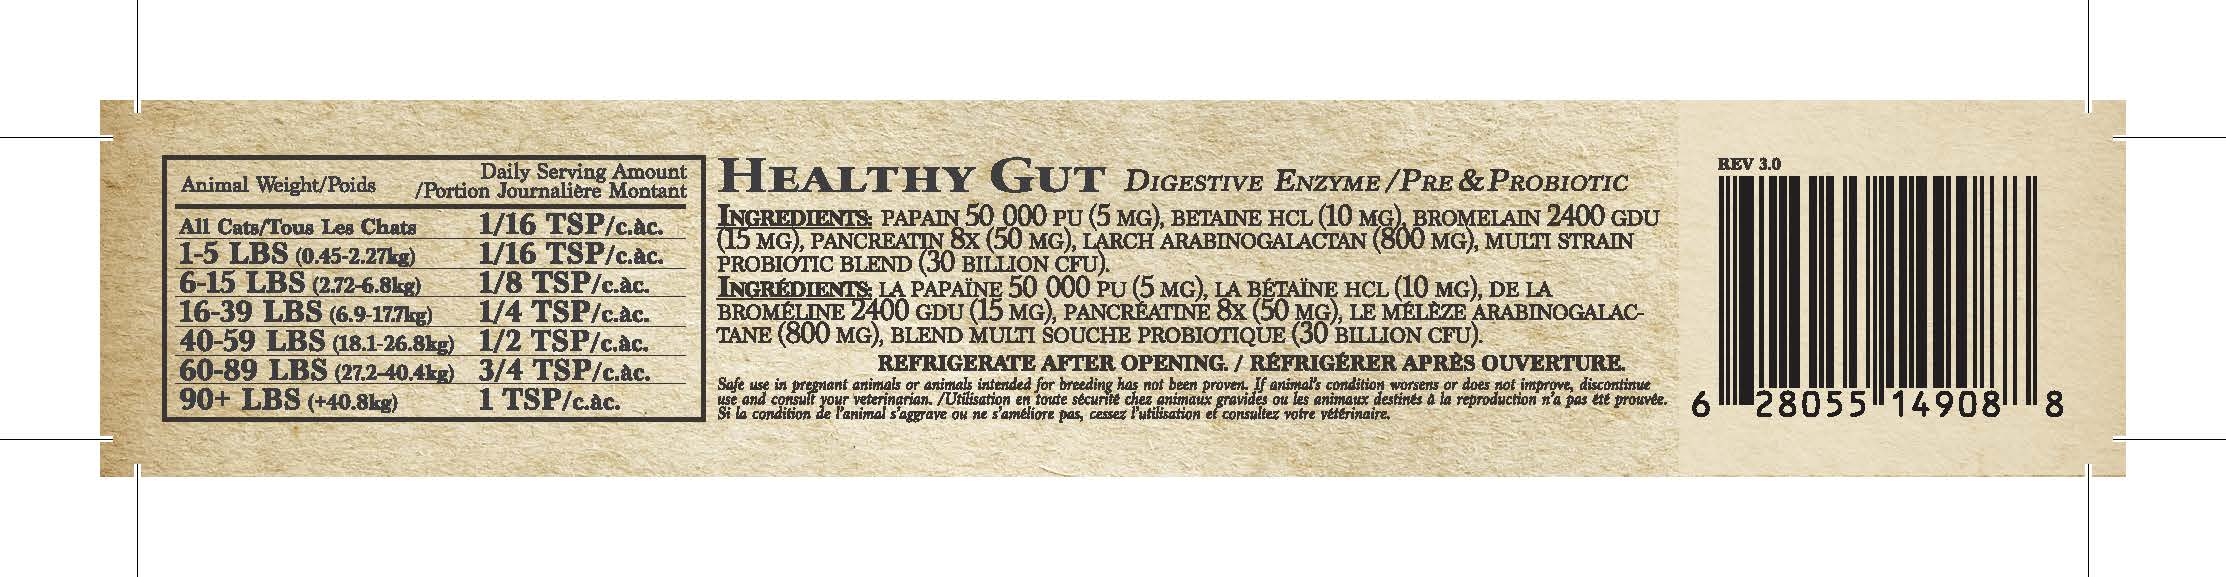 Adored Beast Apothecary Healthy Gut Powder, 1.4oz